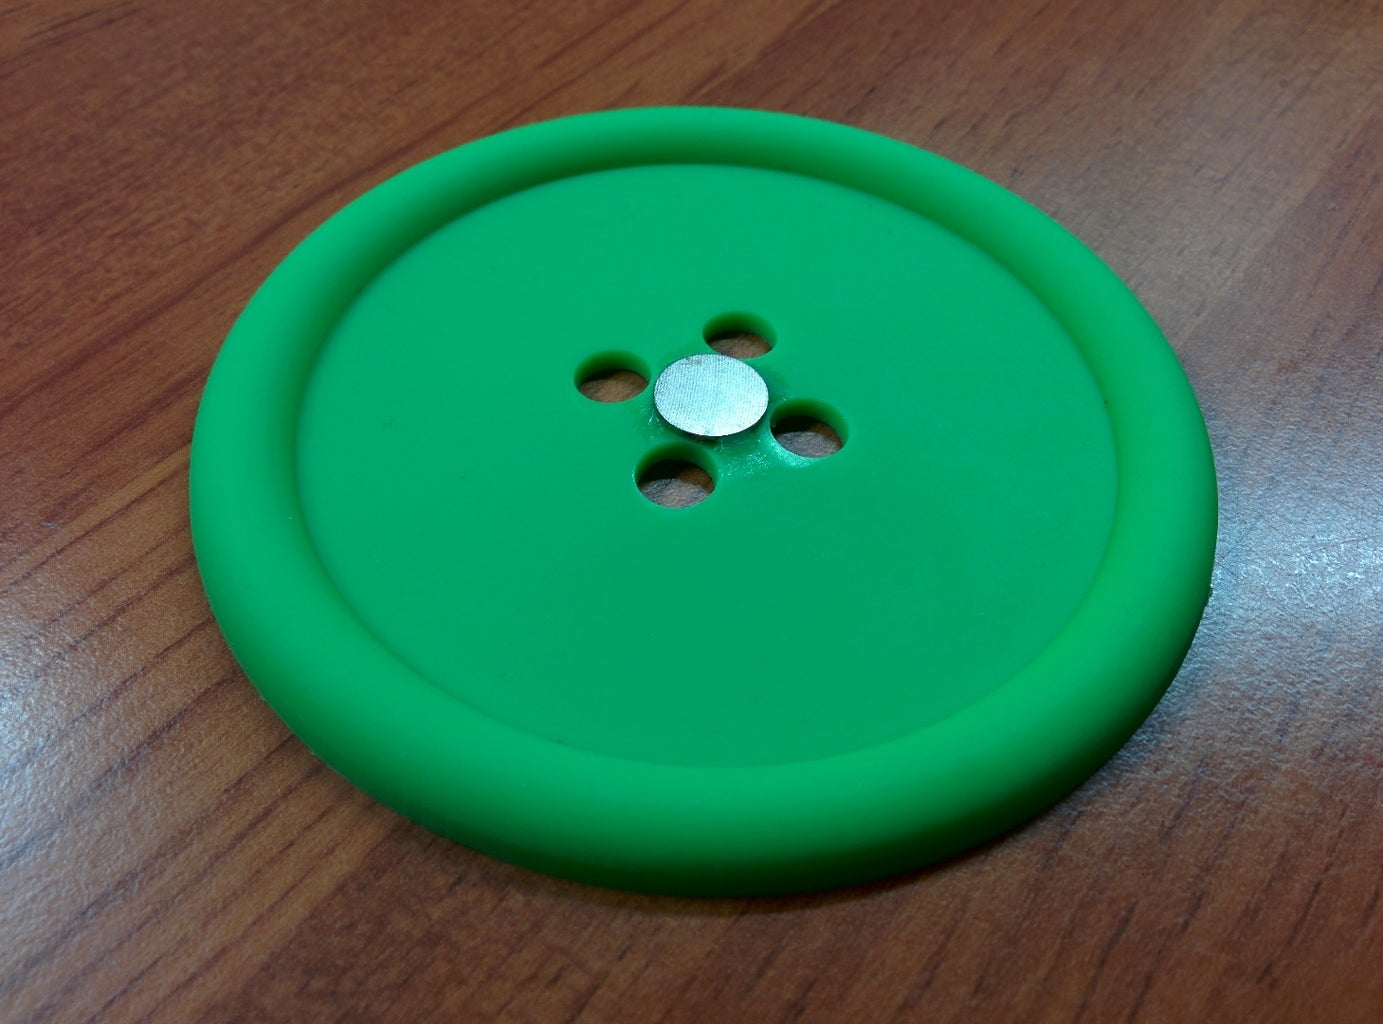 Attach Magnets to Coaster and Mug